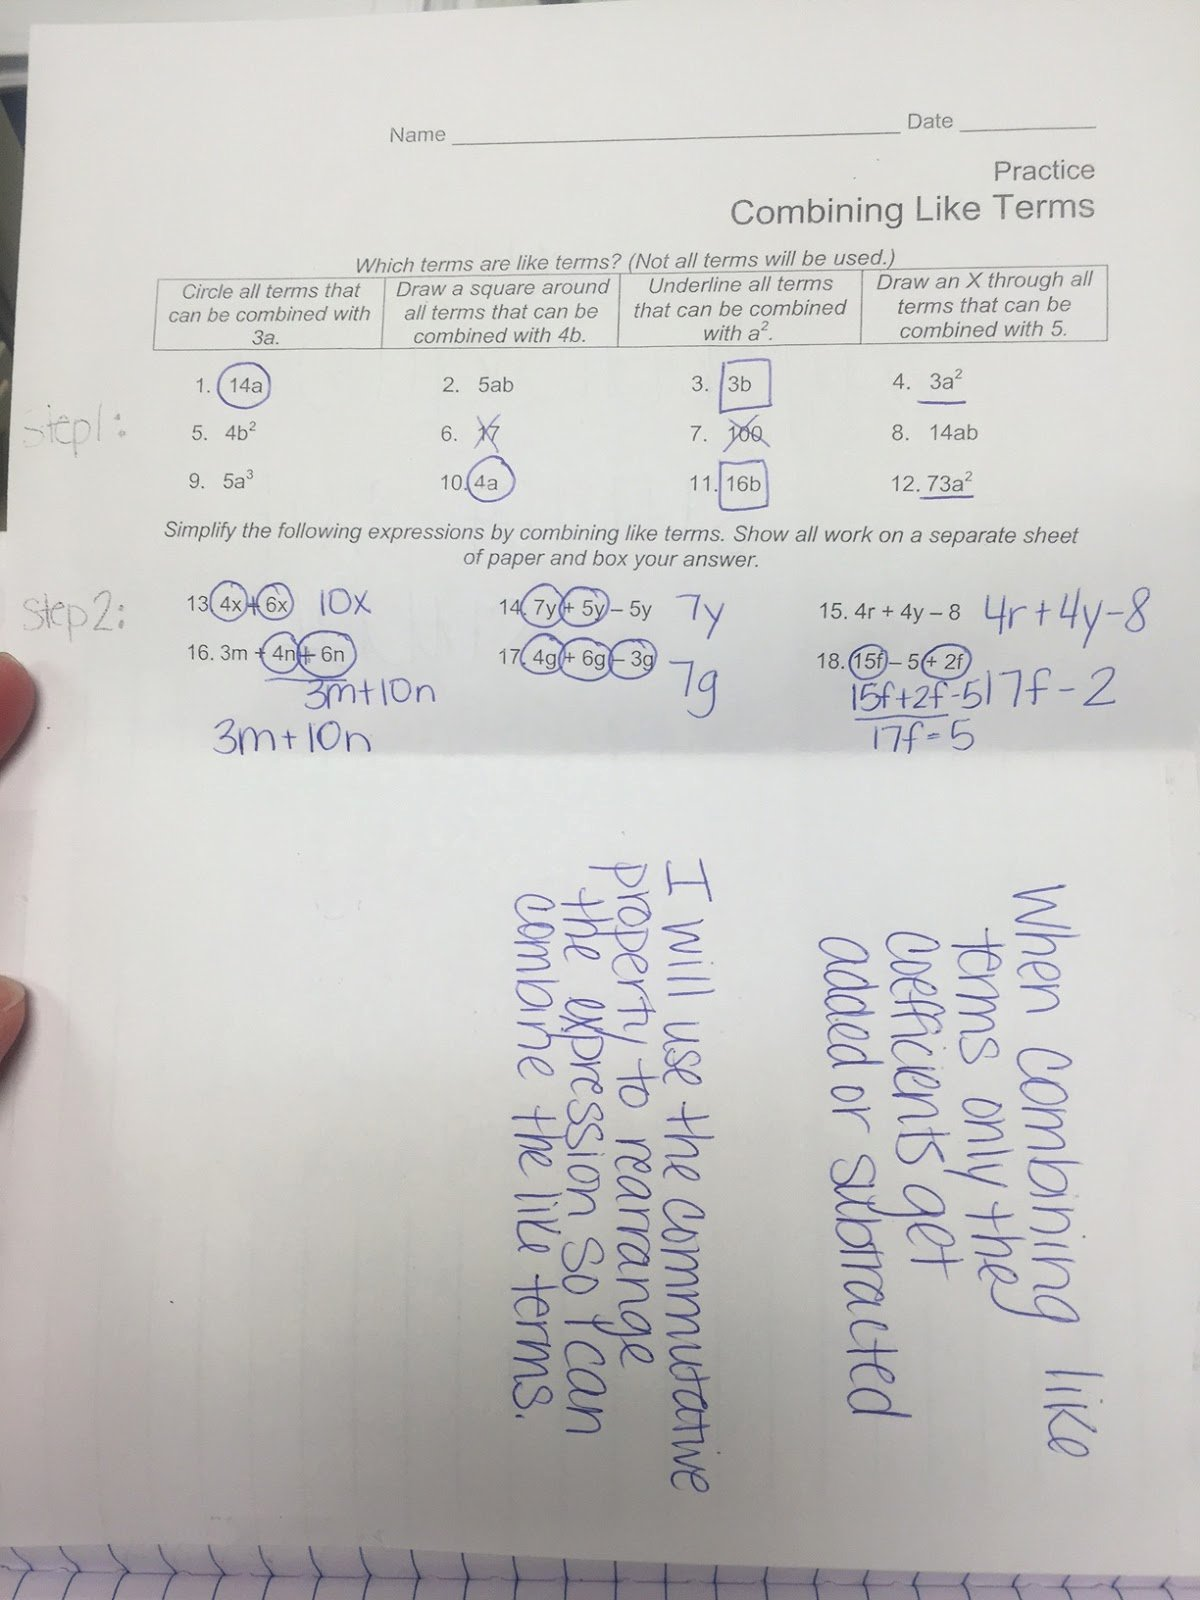 Combining Like Terms Practice Worksheet Unique Mrs White S 6th Grade Math Blog December 2015